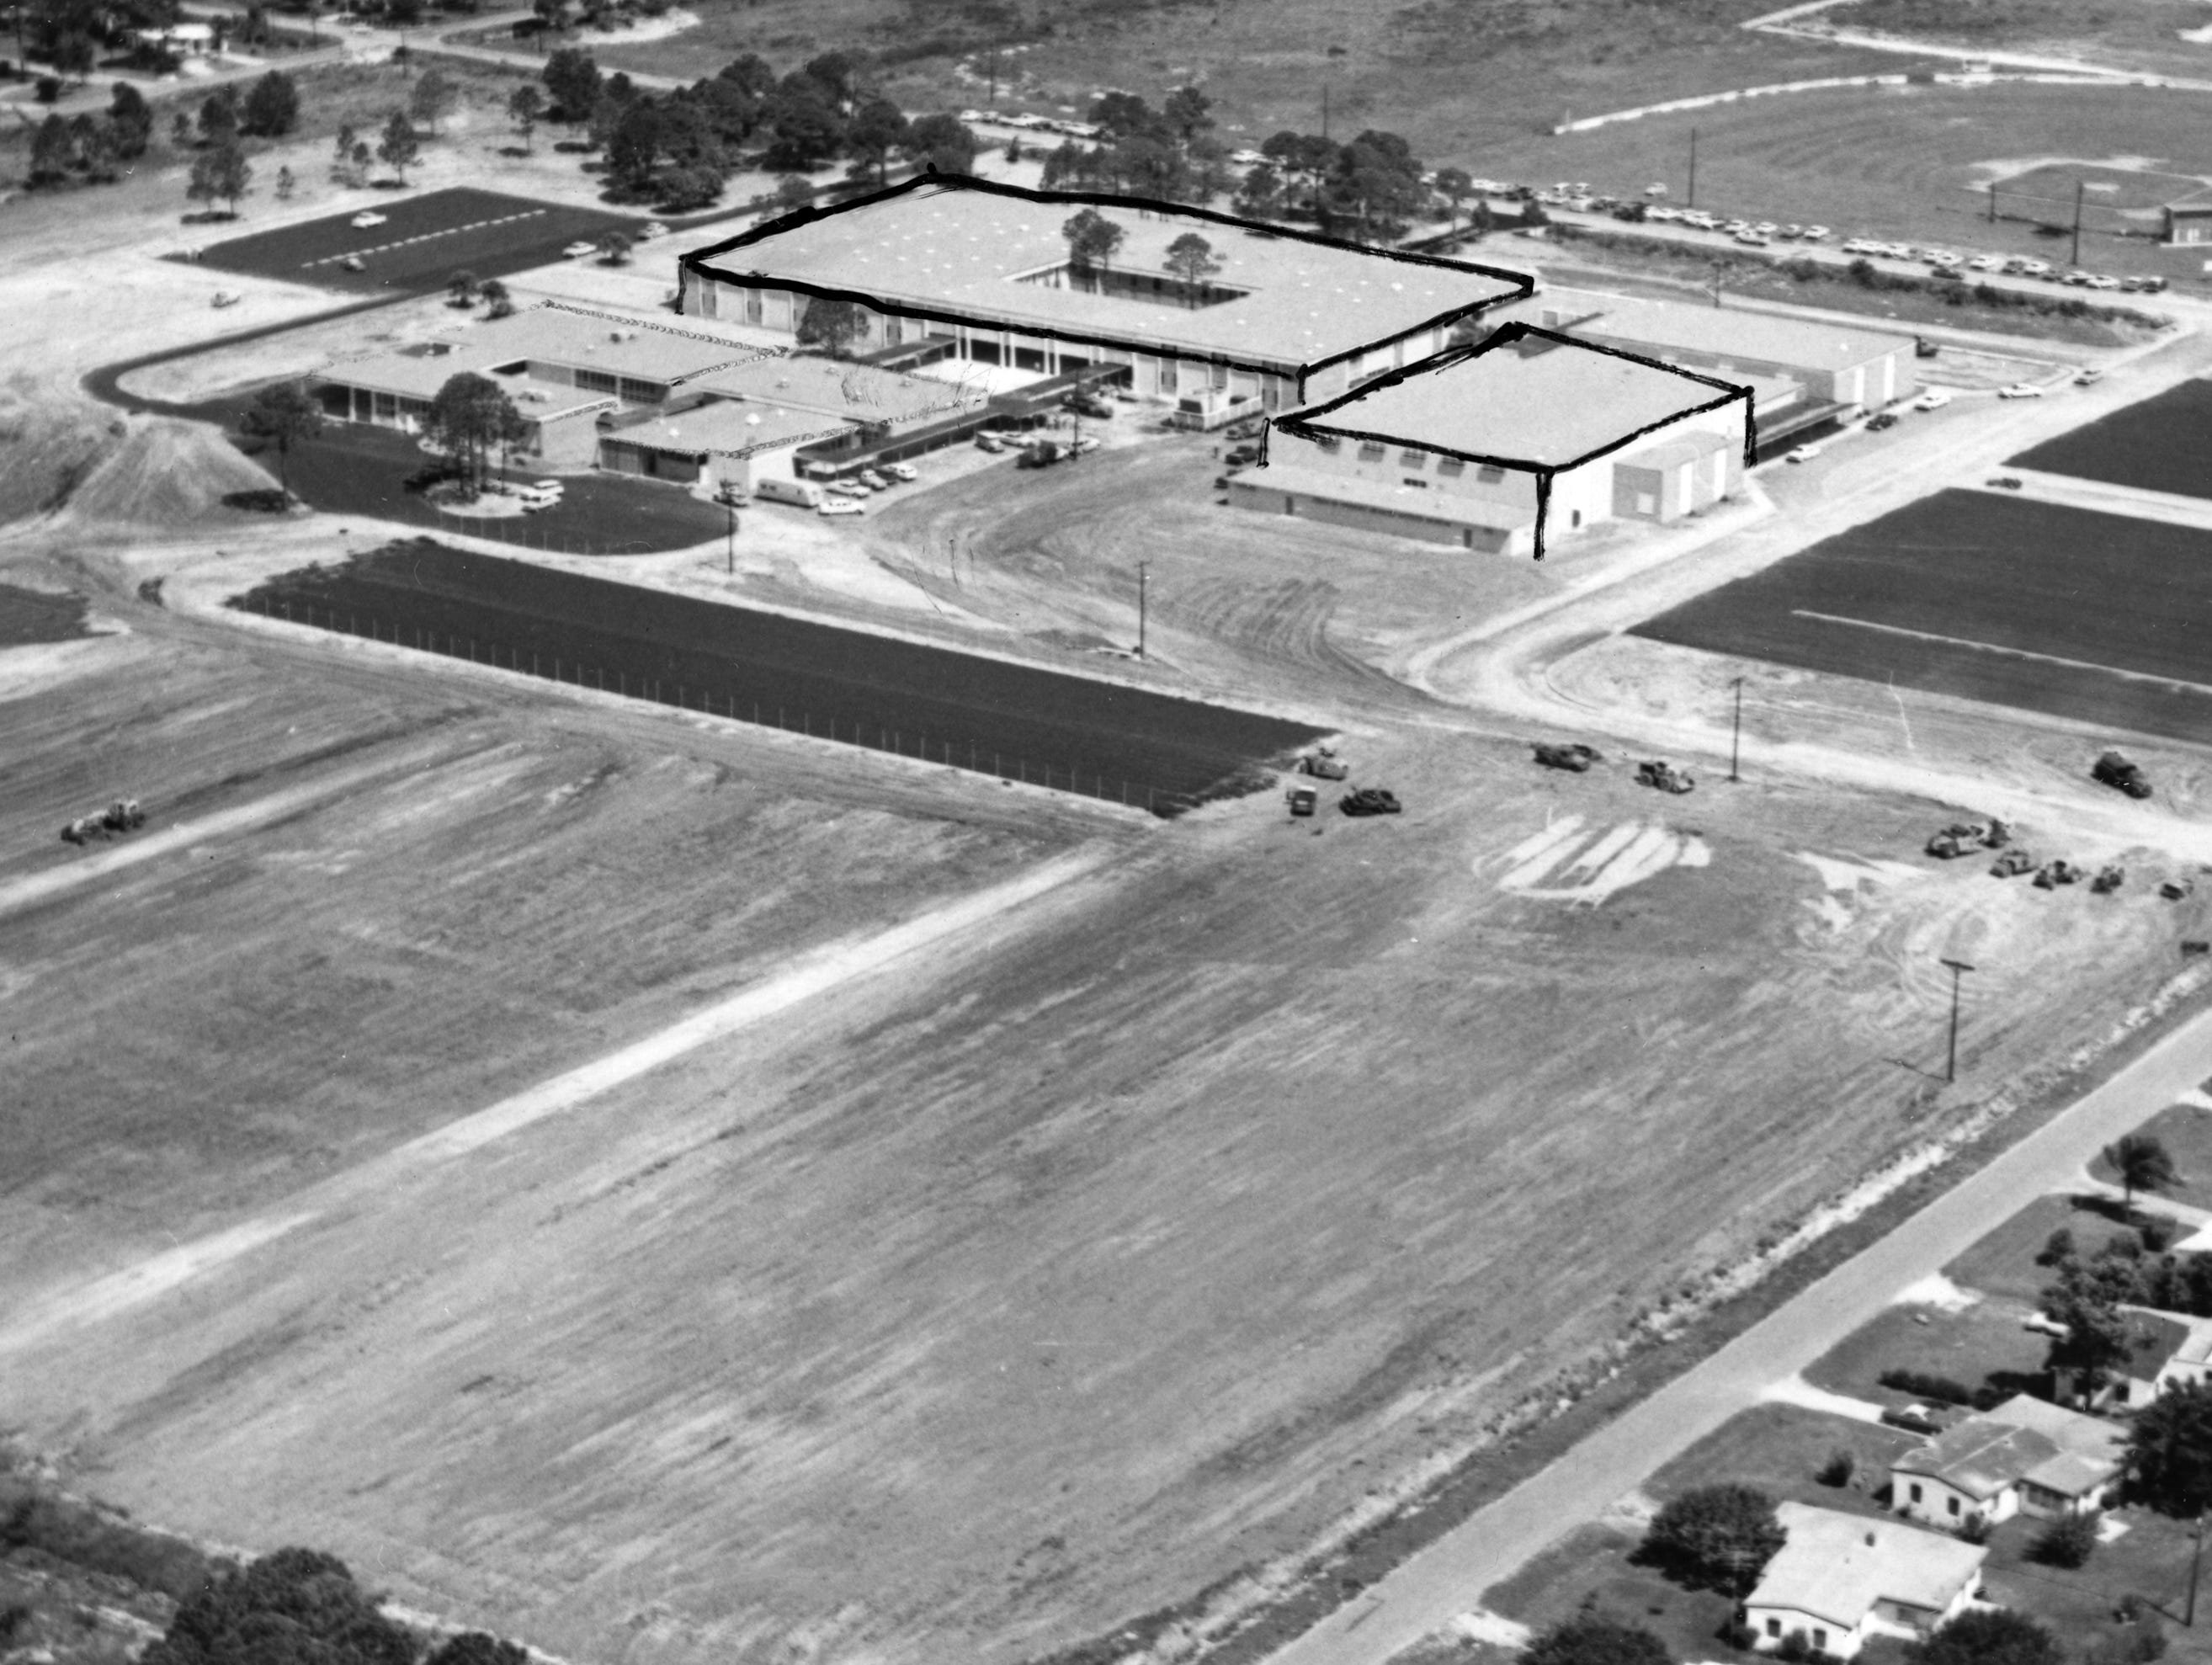 August 27, 1964 - Paved parking areas are being provided at the new Vero Beach Senior High School for more than 400 automobiles. Asphalt parking areas at right of the picture, east of the school, will accommodate more than 300 student automobiles. The paved area west of the building, plus other smaller ones, will be available for more than 100 automobiles of staff and faculty. Entrance to the school will be from 16th Street and exit will be to 16th Avenue. Both entrance and exit will be one way. The large paved area south of the area will be used for eight basketball courts and either tennis courts plus badminton and volleyball areas.